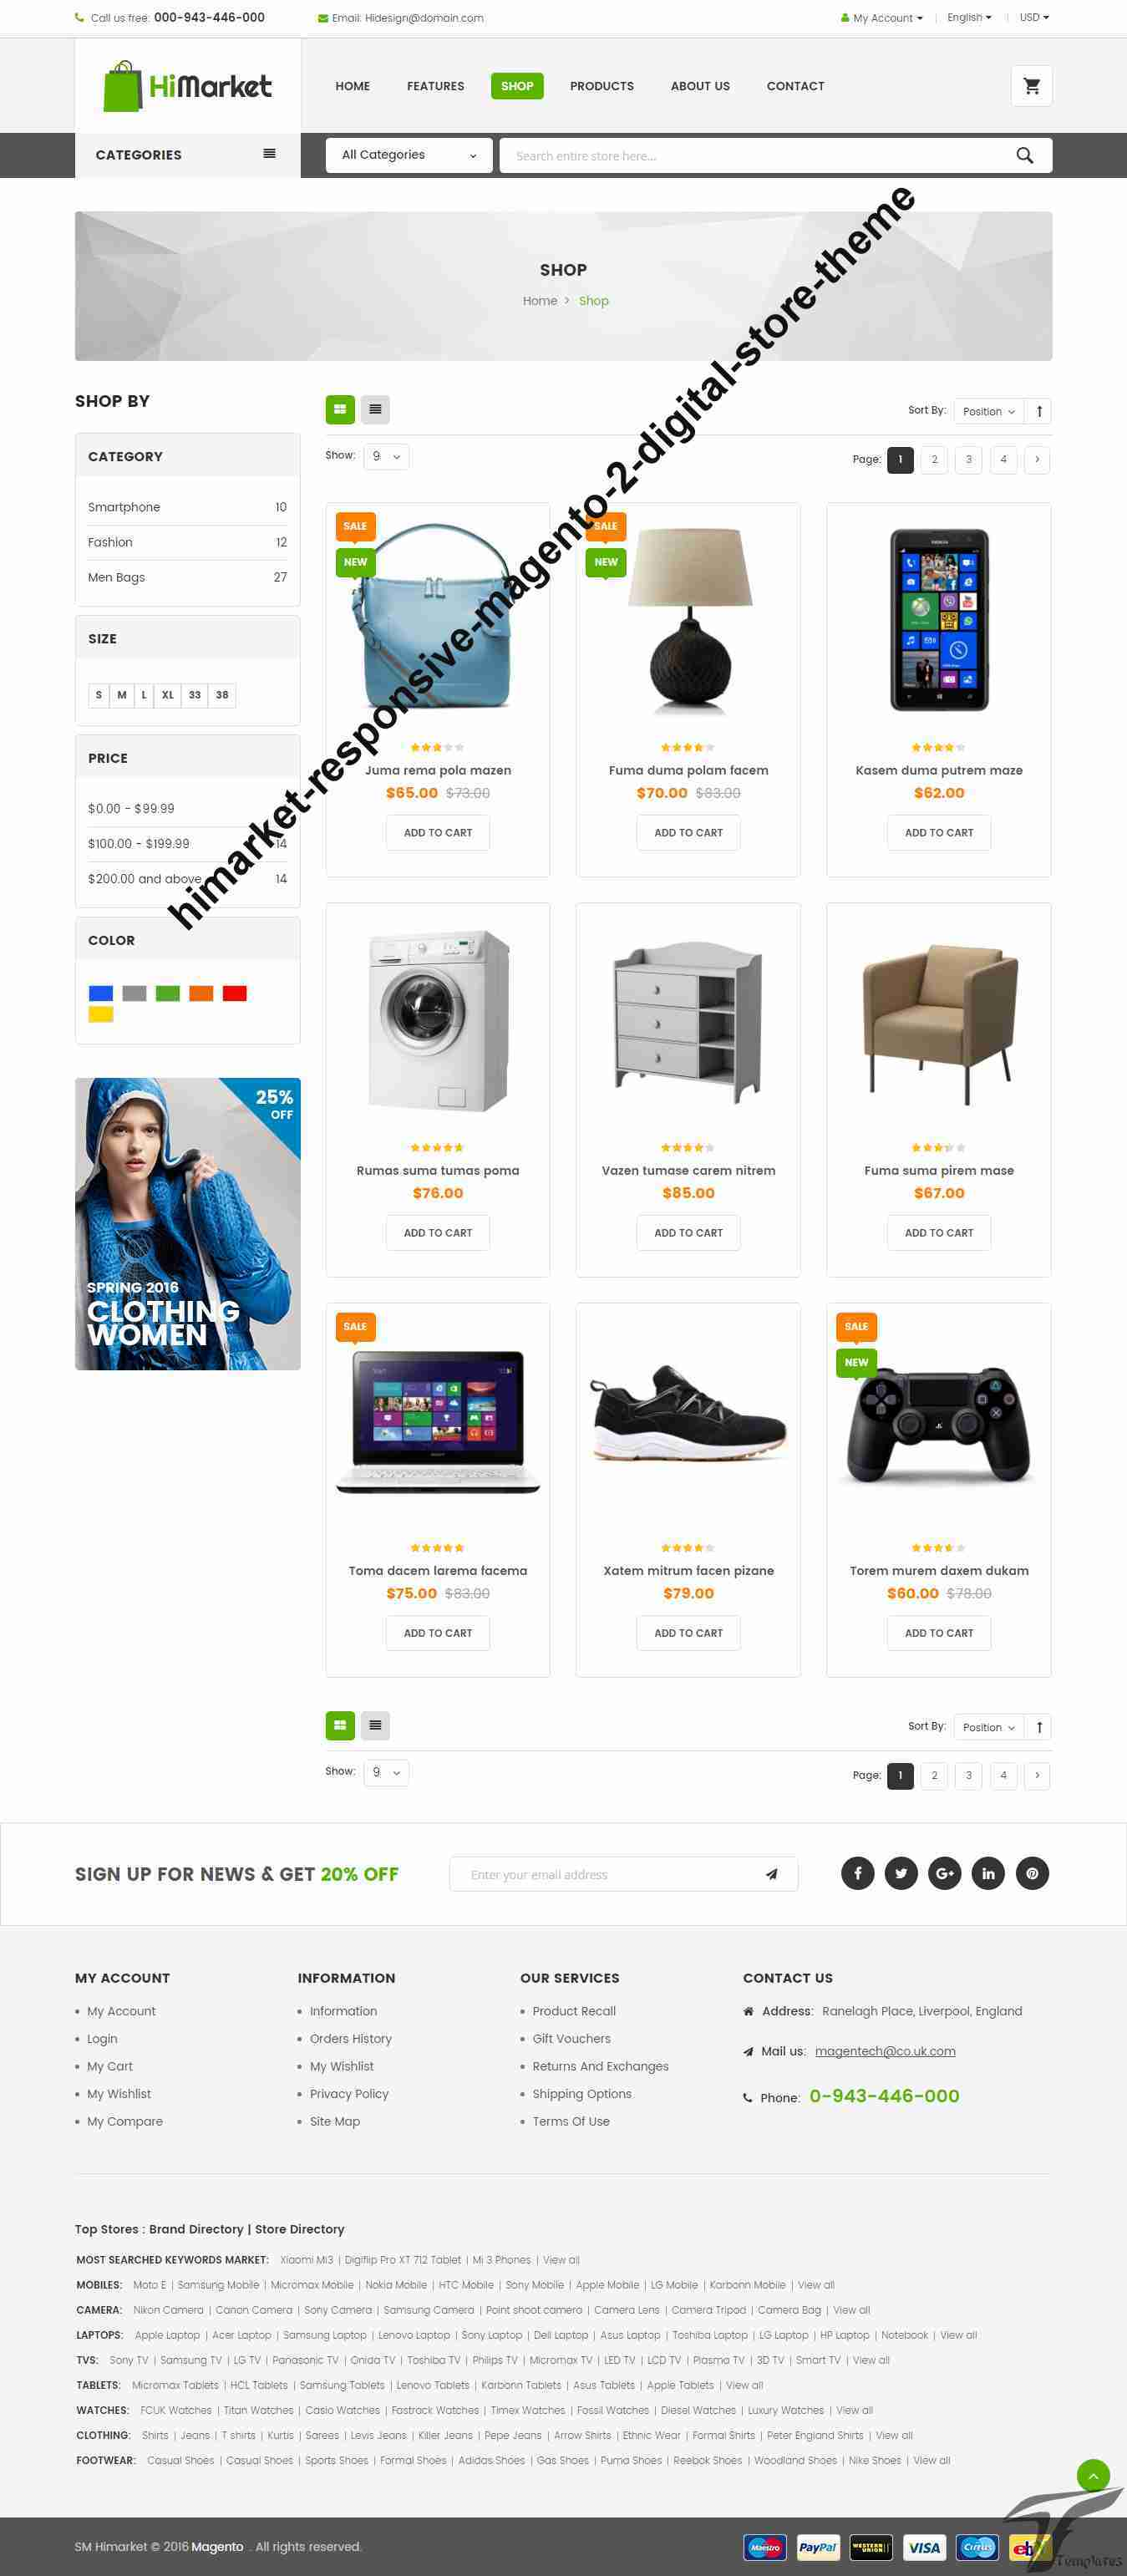 https://images.besthemes.com/images/h1_himarket-responsive-magento-2-digital-store-theme6-_-199157109/06-category.png